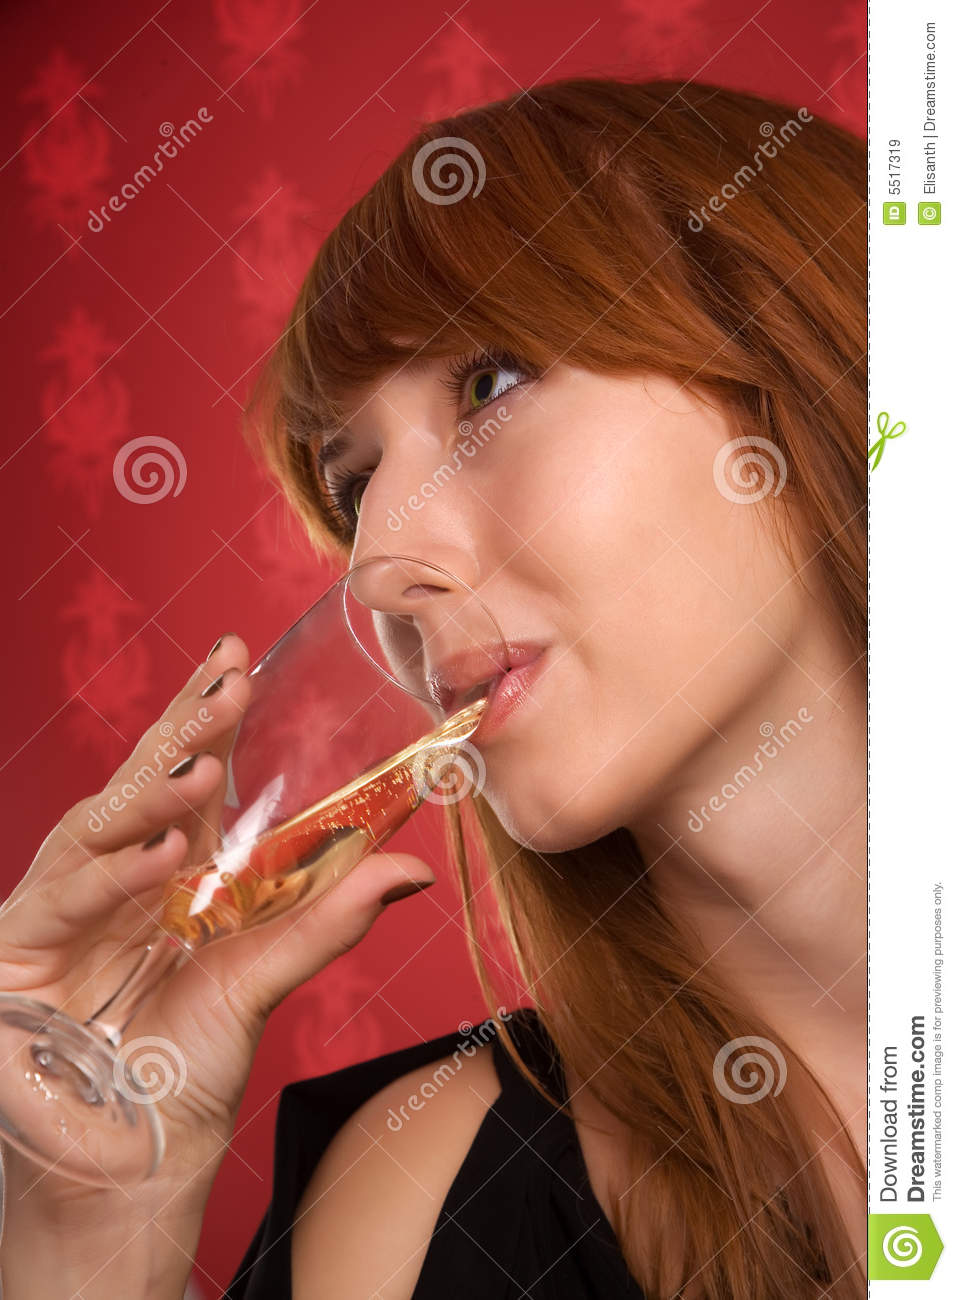 Girl Drinking Alcohol Wallpaper Beautiful Girl Drinking Champagne Royalty Free Stock